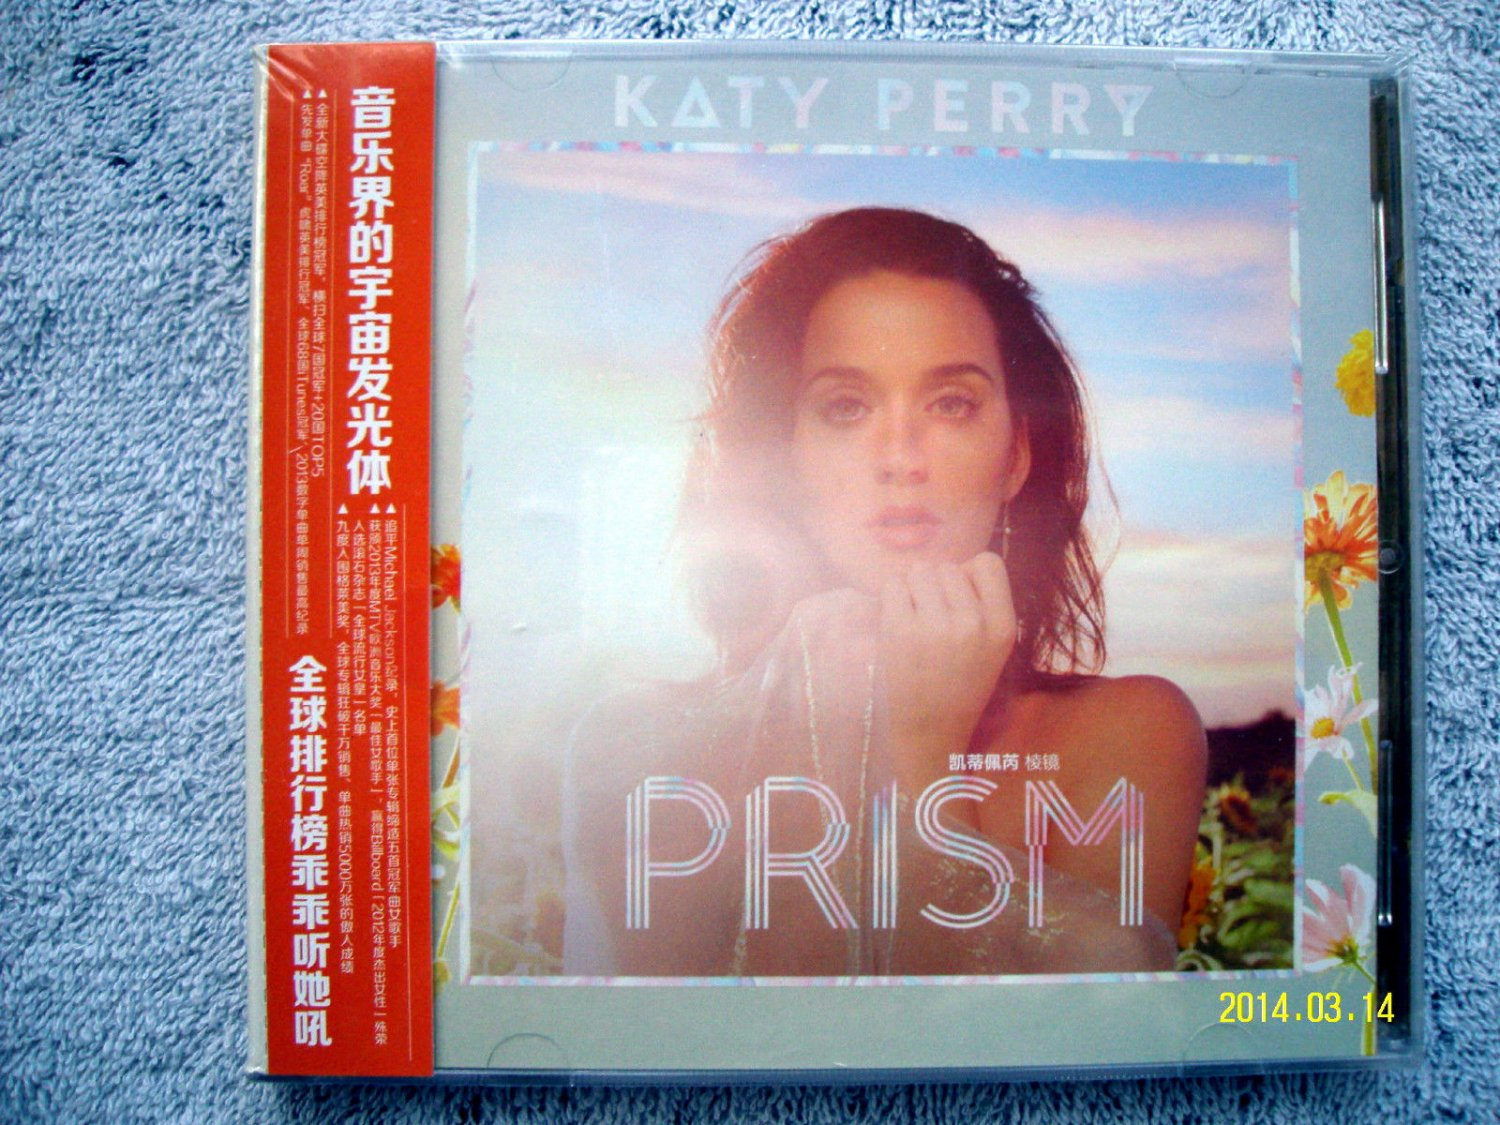 KATY PERRY PRISM 2013 China Version Genuine CD ISBN:9787888807174